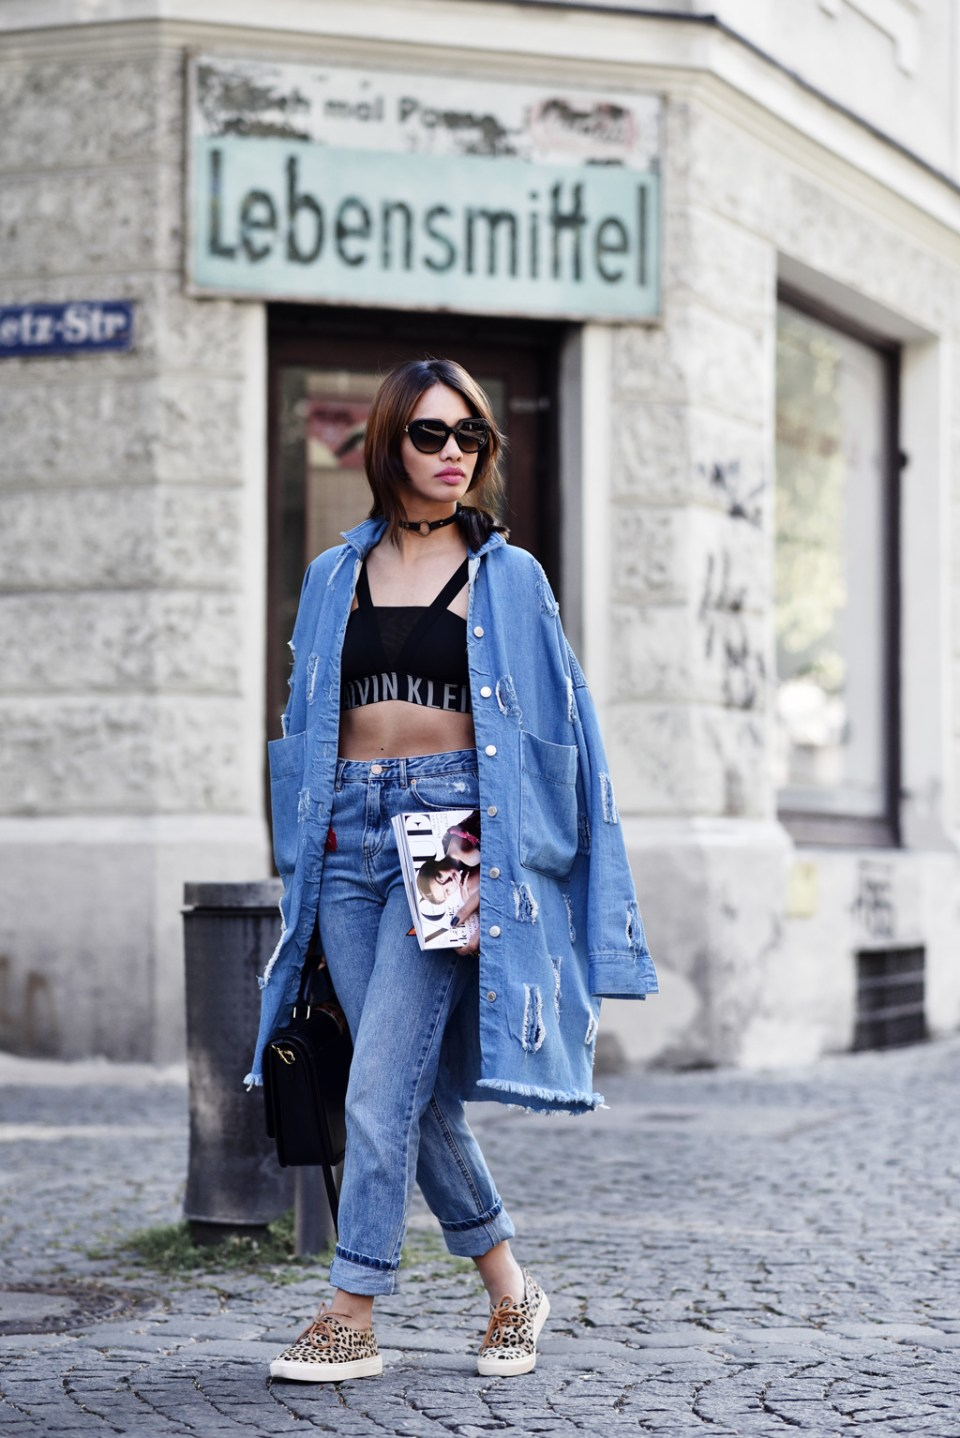 thefashionanarchy_munich_muenchen_blogger_fashionblogger_modeblogger_styleblogger_beautyblogger_denim_cutout_mantel_coat_patches_mom_jeans_mcm_outfit_1